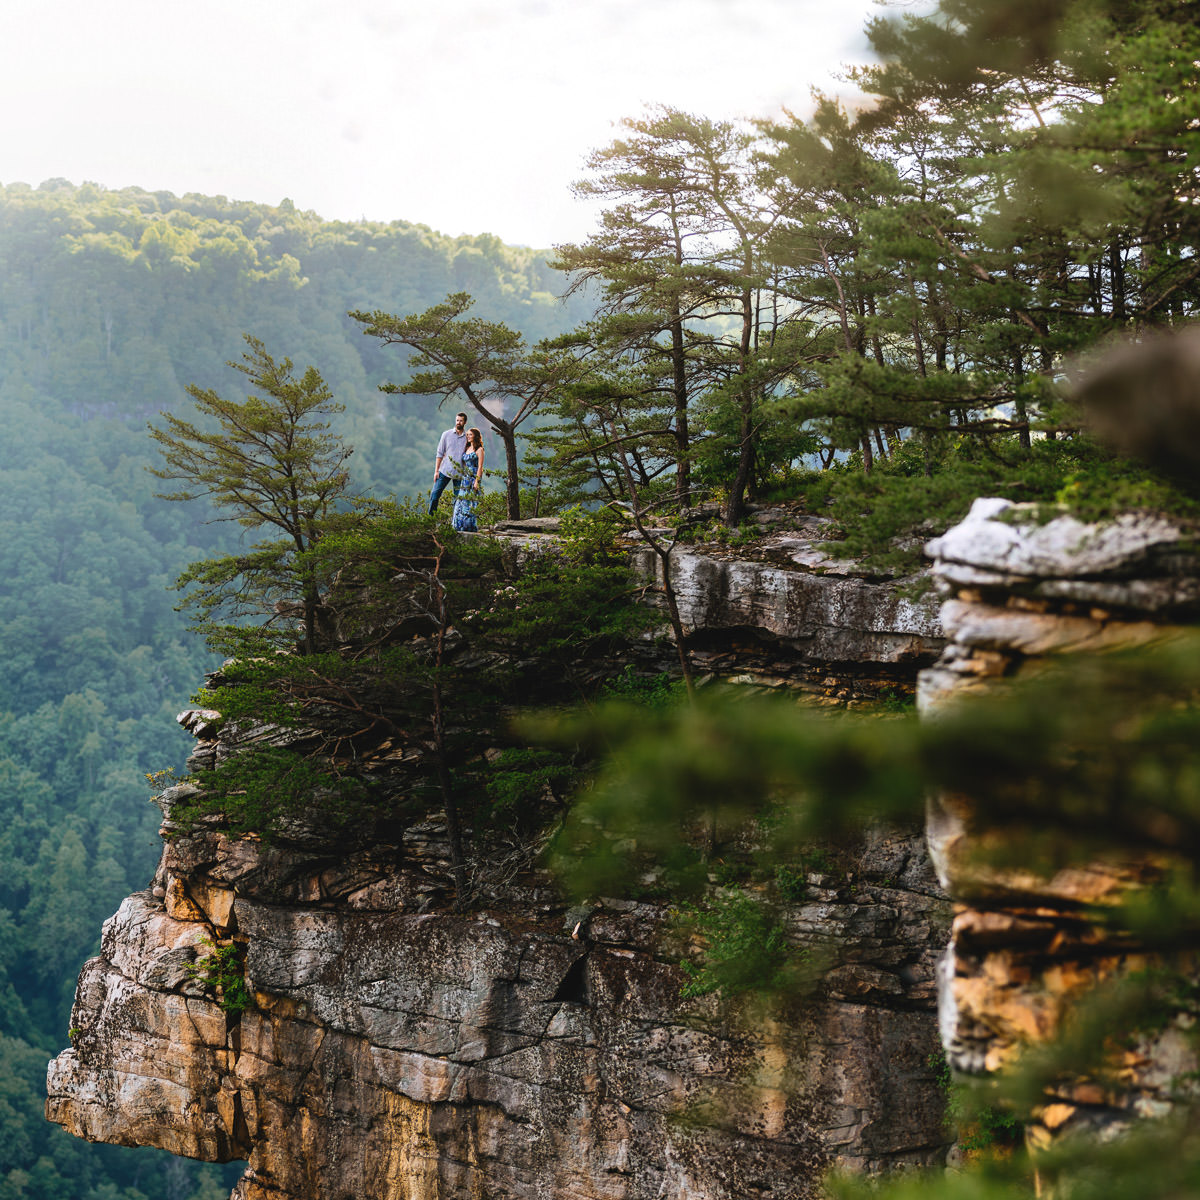 Backpacking West Virginia: An Endless Wall Trail Engagement // Katie & Andrew • The